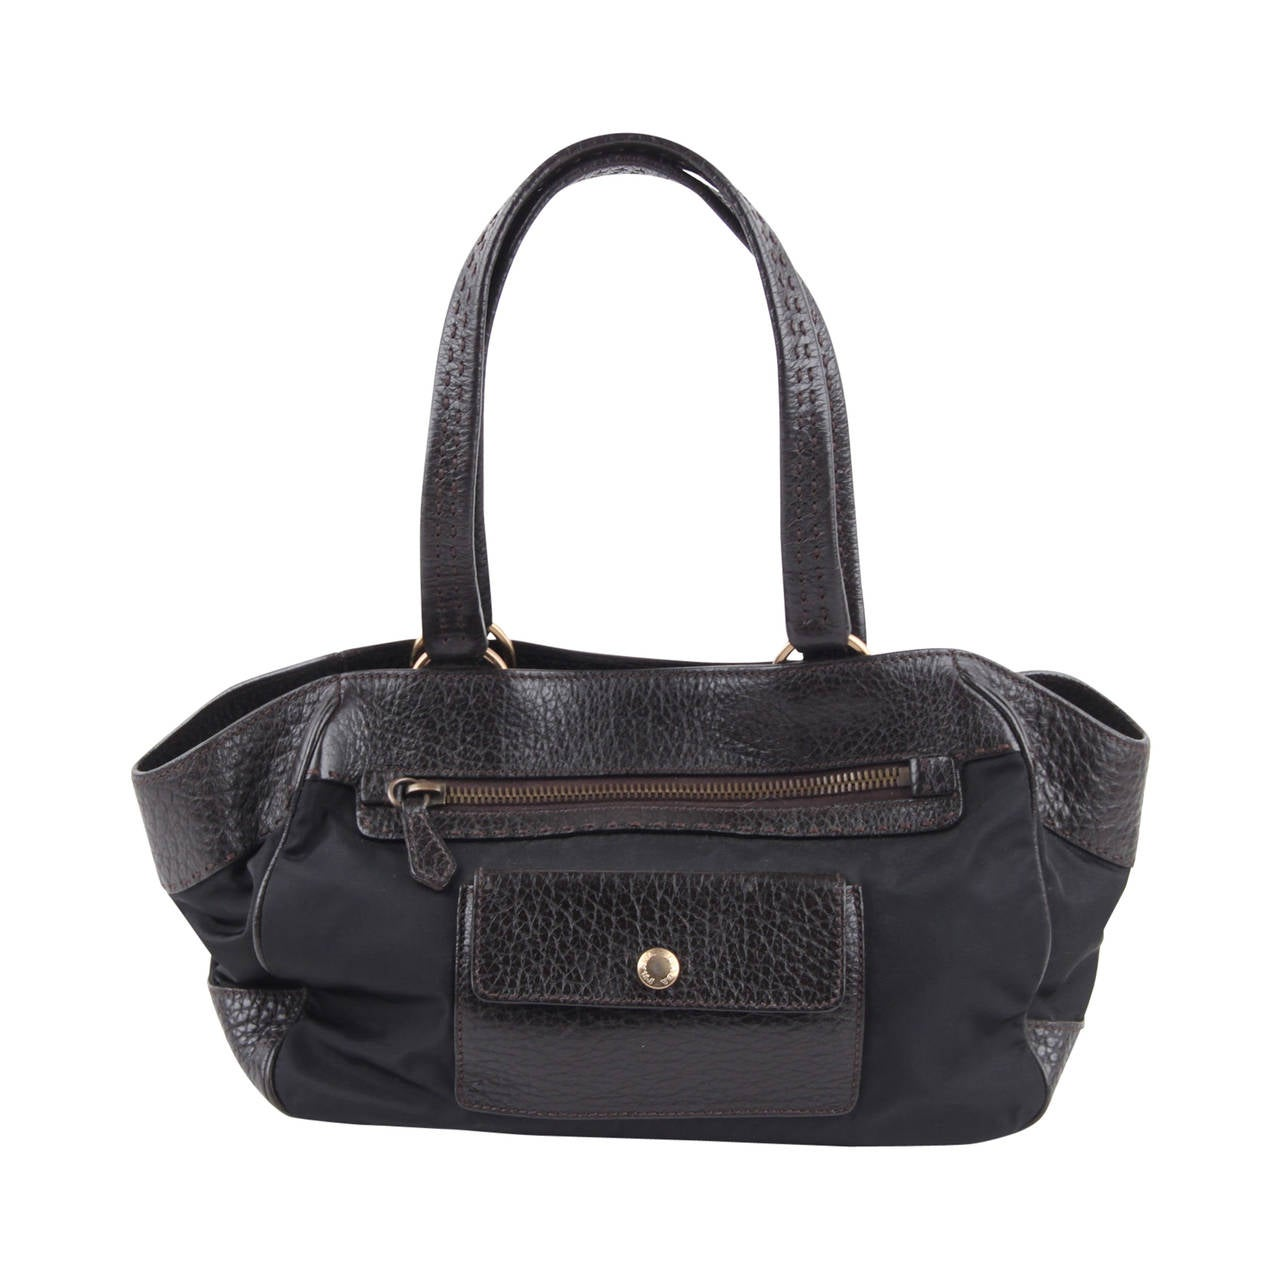 PRADA Black Canvas and Dark Brown Leather TOTE HANDBAG w/ Front ...